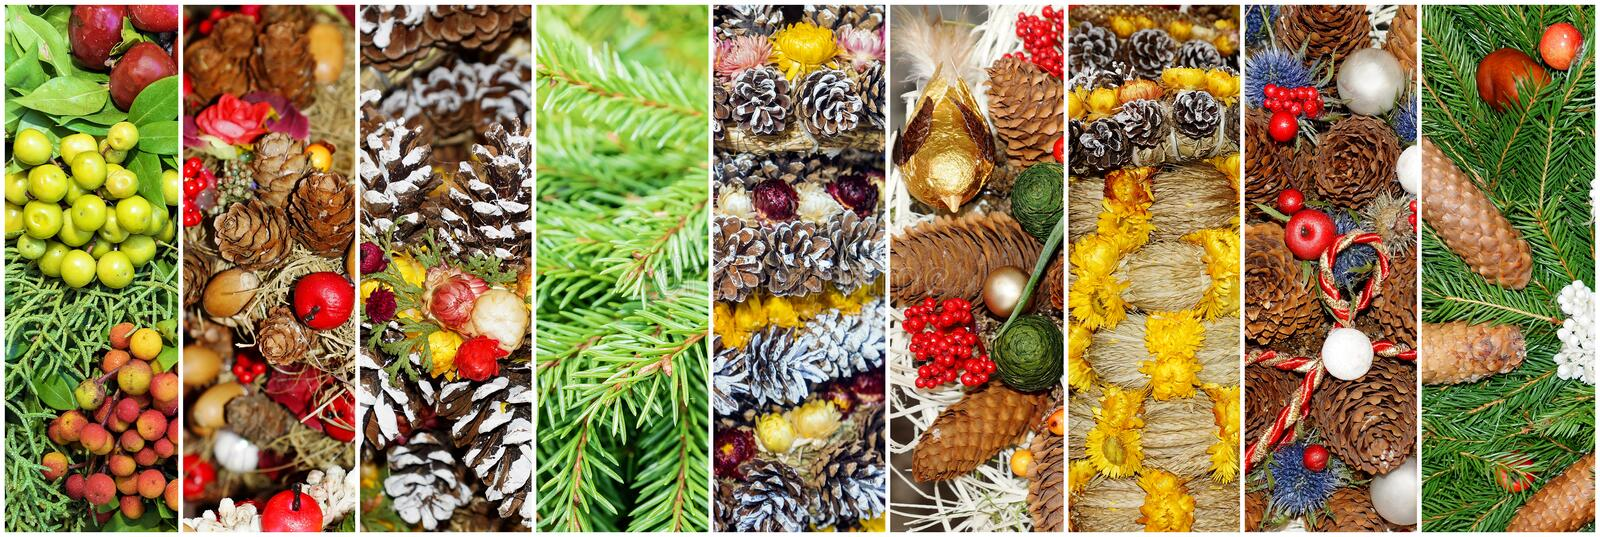 Christmas collage from fir-tree branches and decoration. royalty free stock image